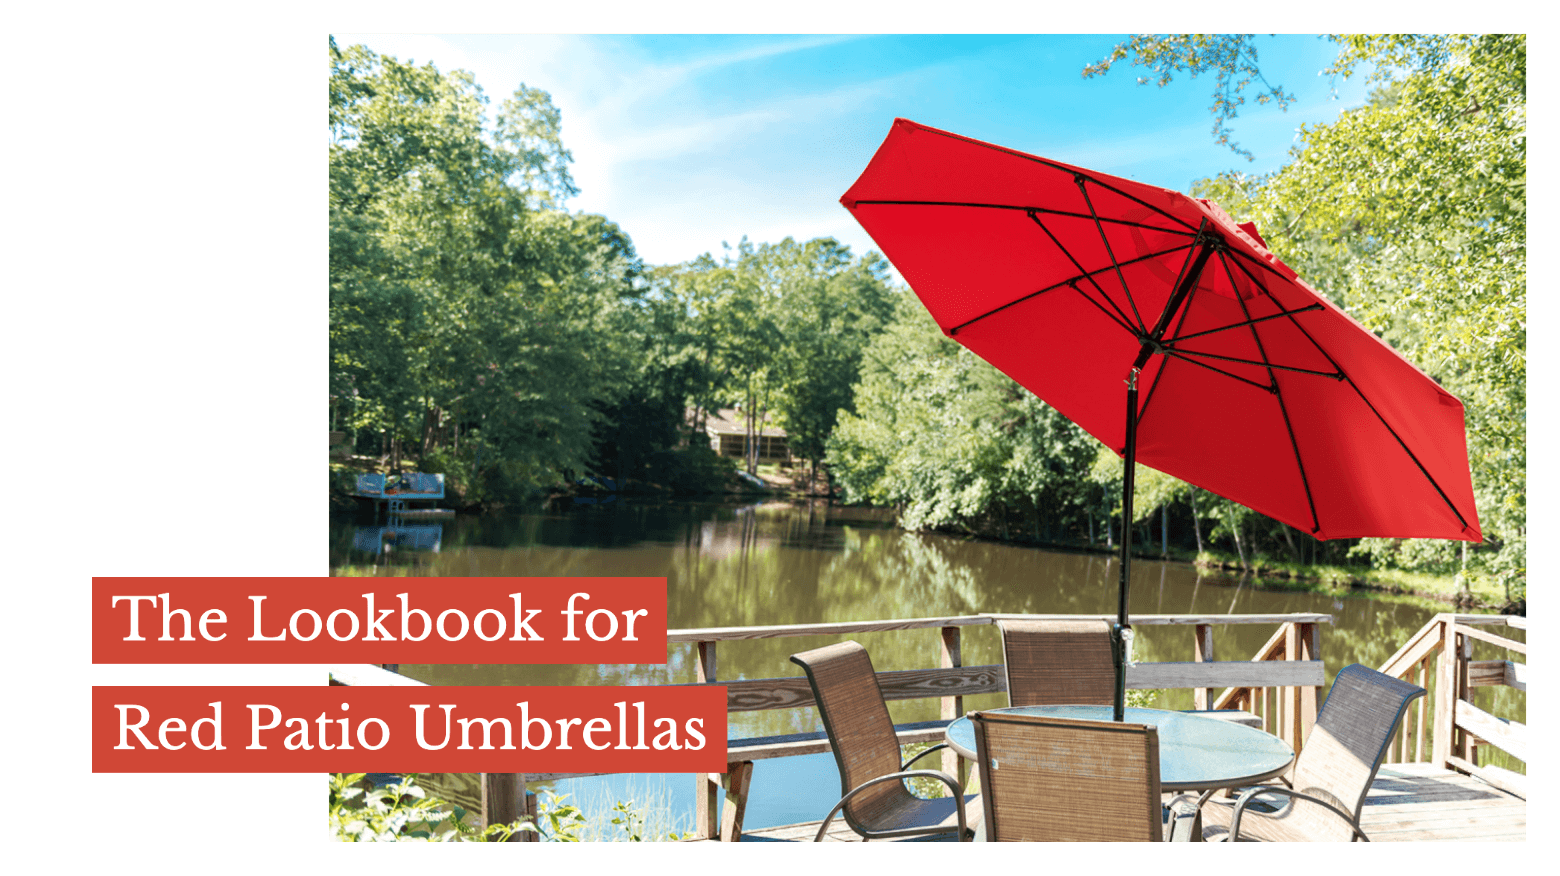 The Lookbook for Red Patio Umbrellas